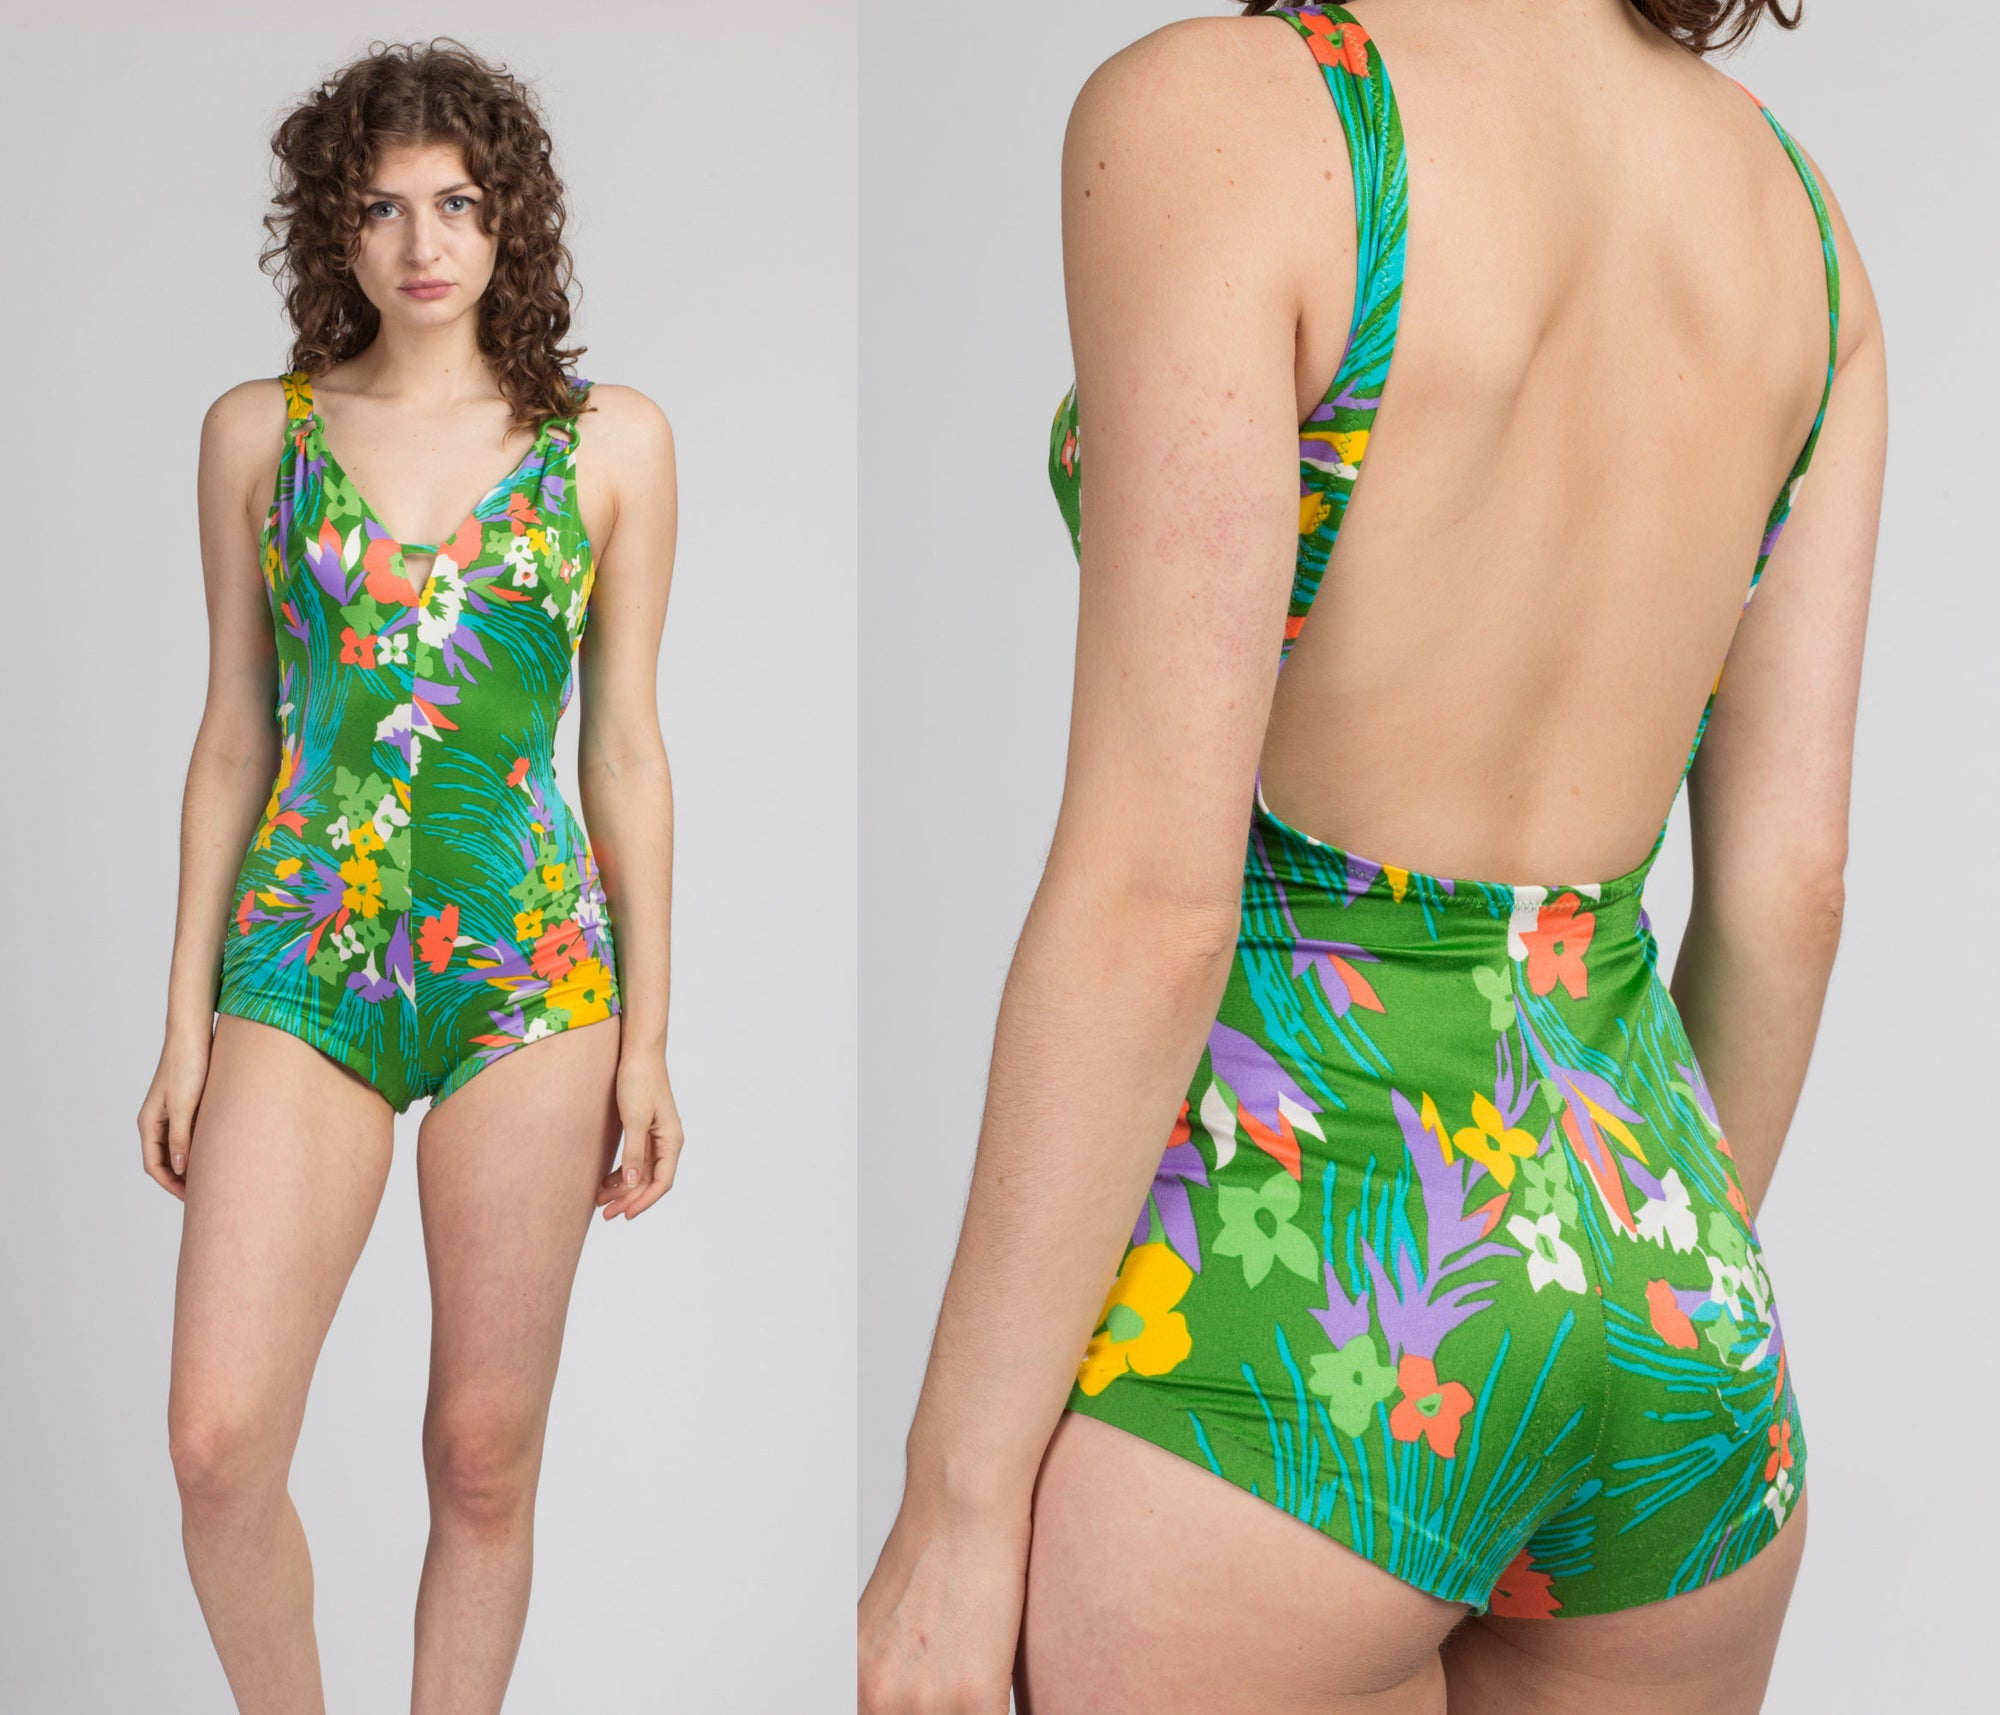 70s 80s Green Floral Low Back Swimsuit - Medium